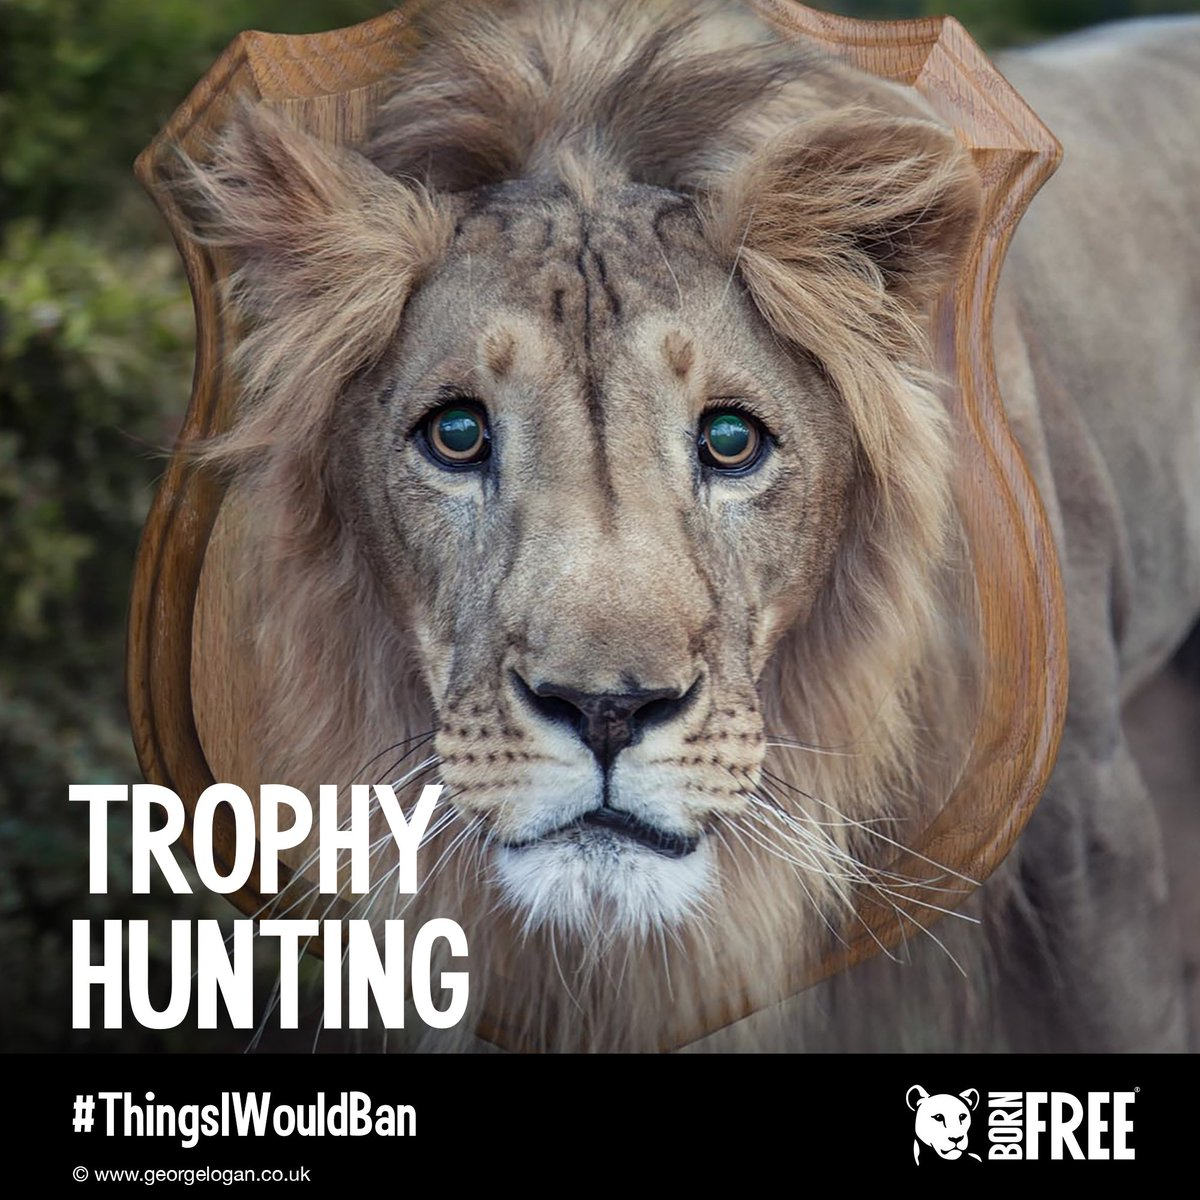 RT @BornFreeFDN: #ThingsIWouldBan: Trophy Hunting! RT if you agree ???????????????????? https://t.co/zRdI8zkNP7